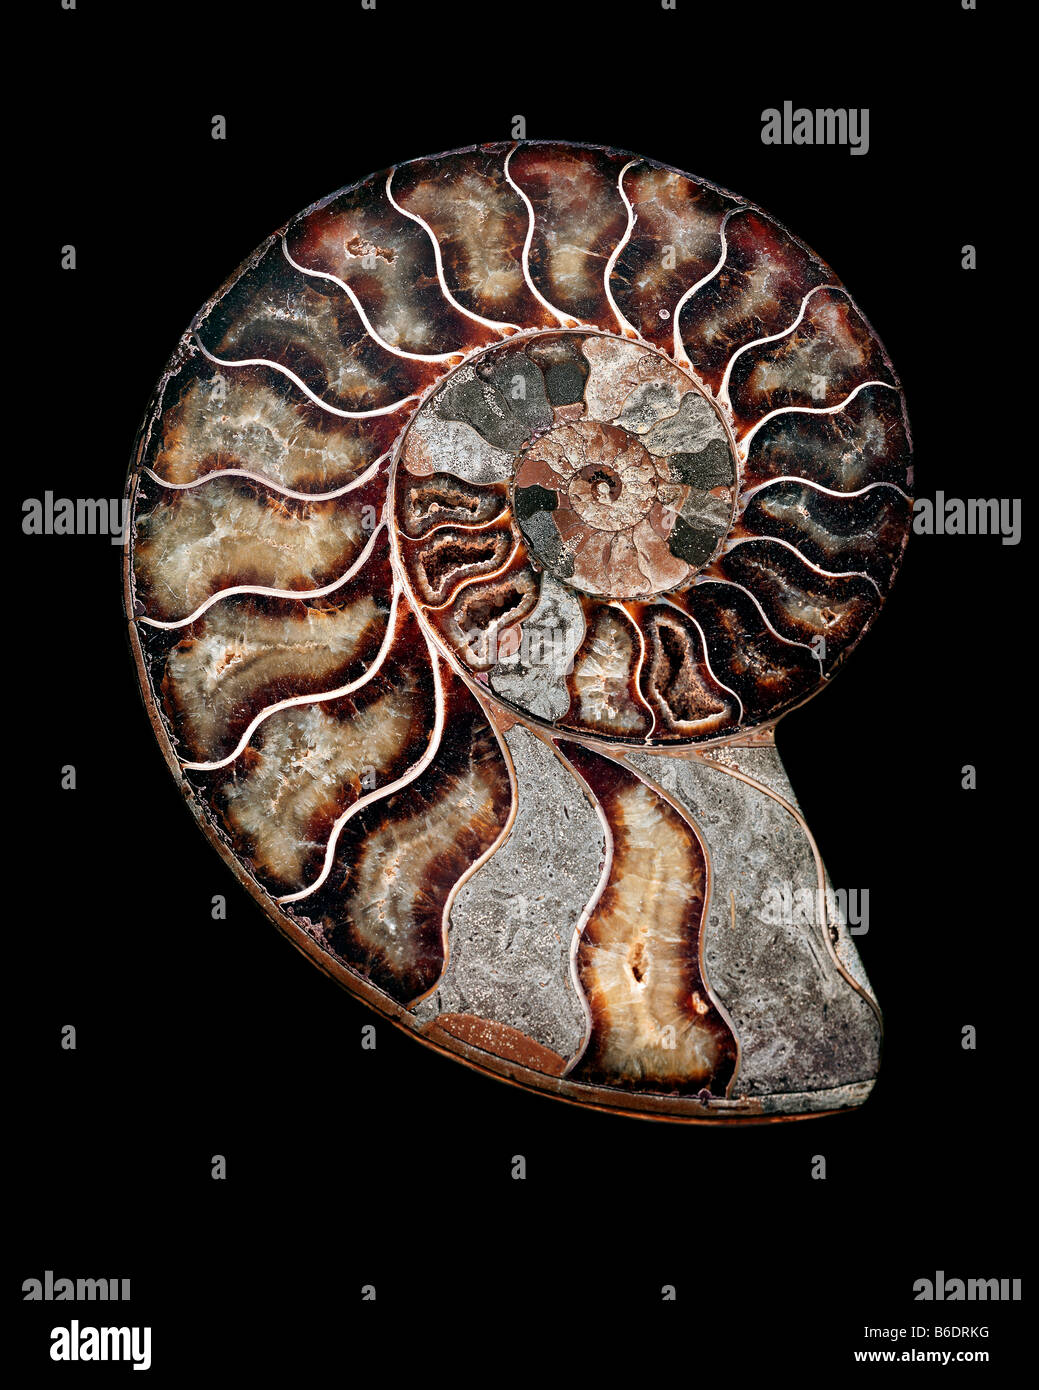 Ammonite. Polished sectioned ammonite fossil. Ammonites are extinct marine invertebrates. Stock Photo